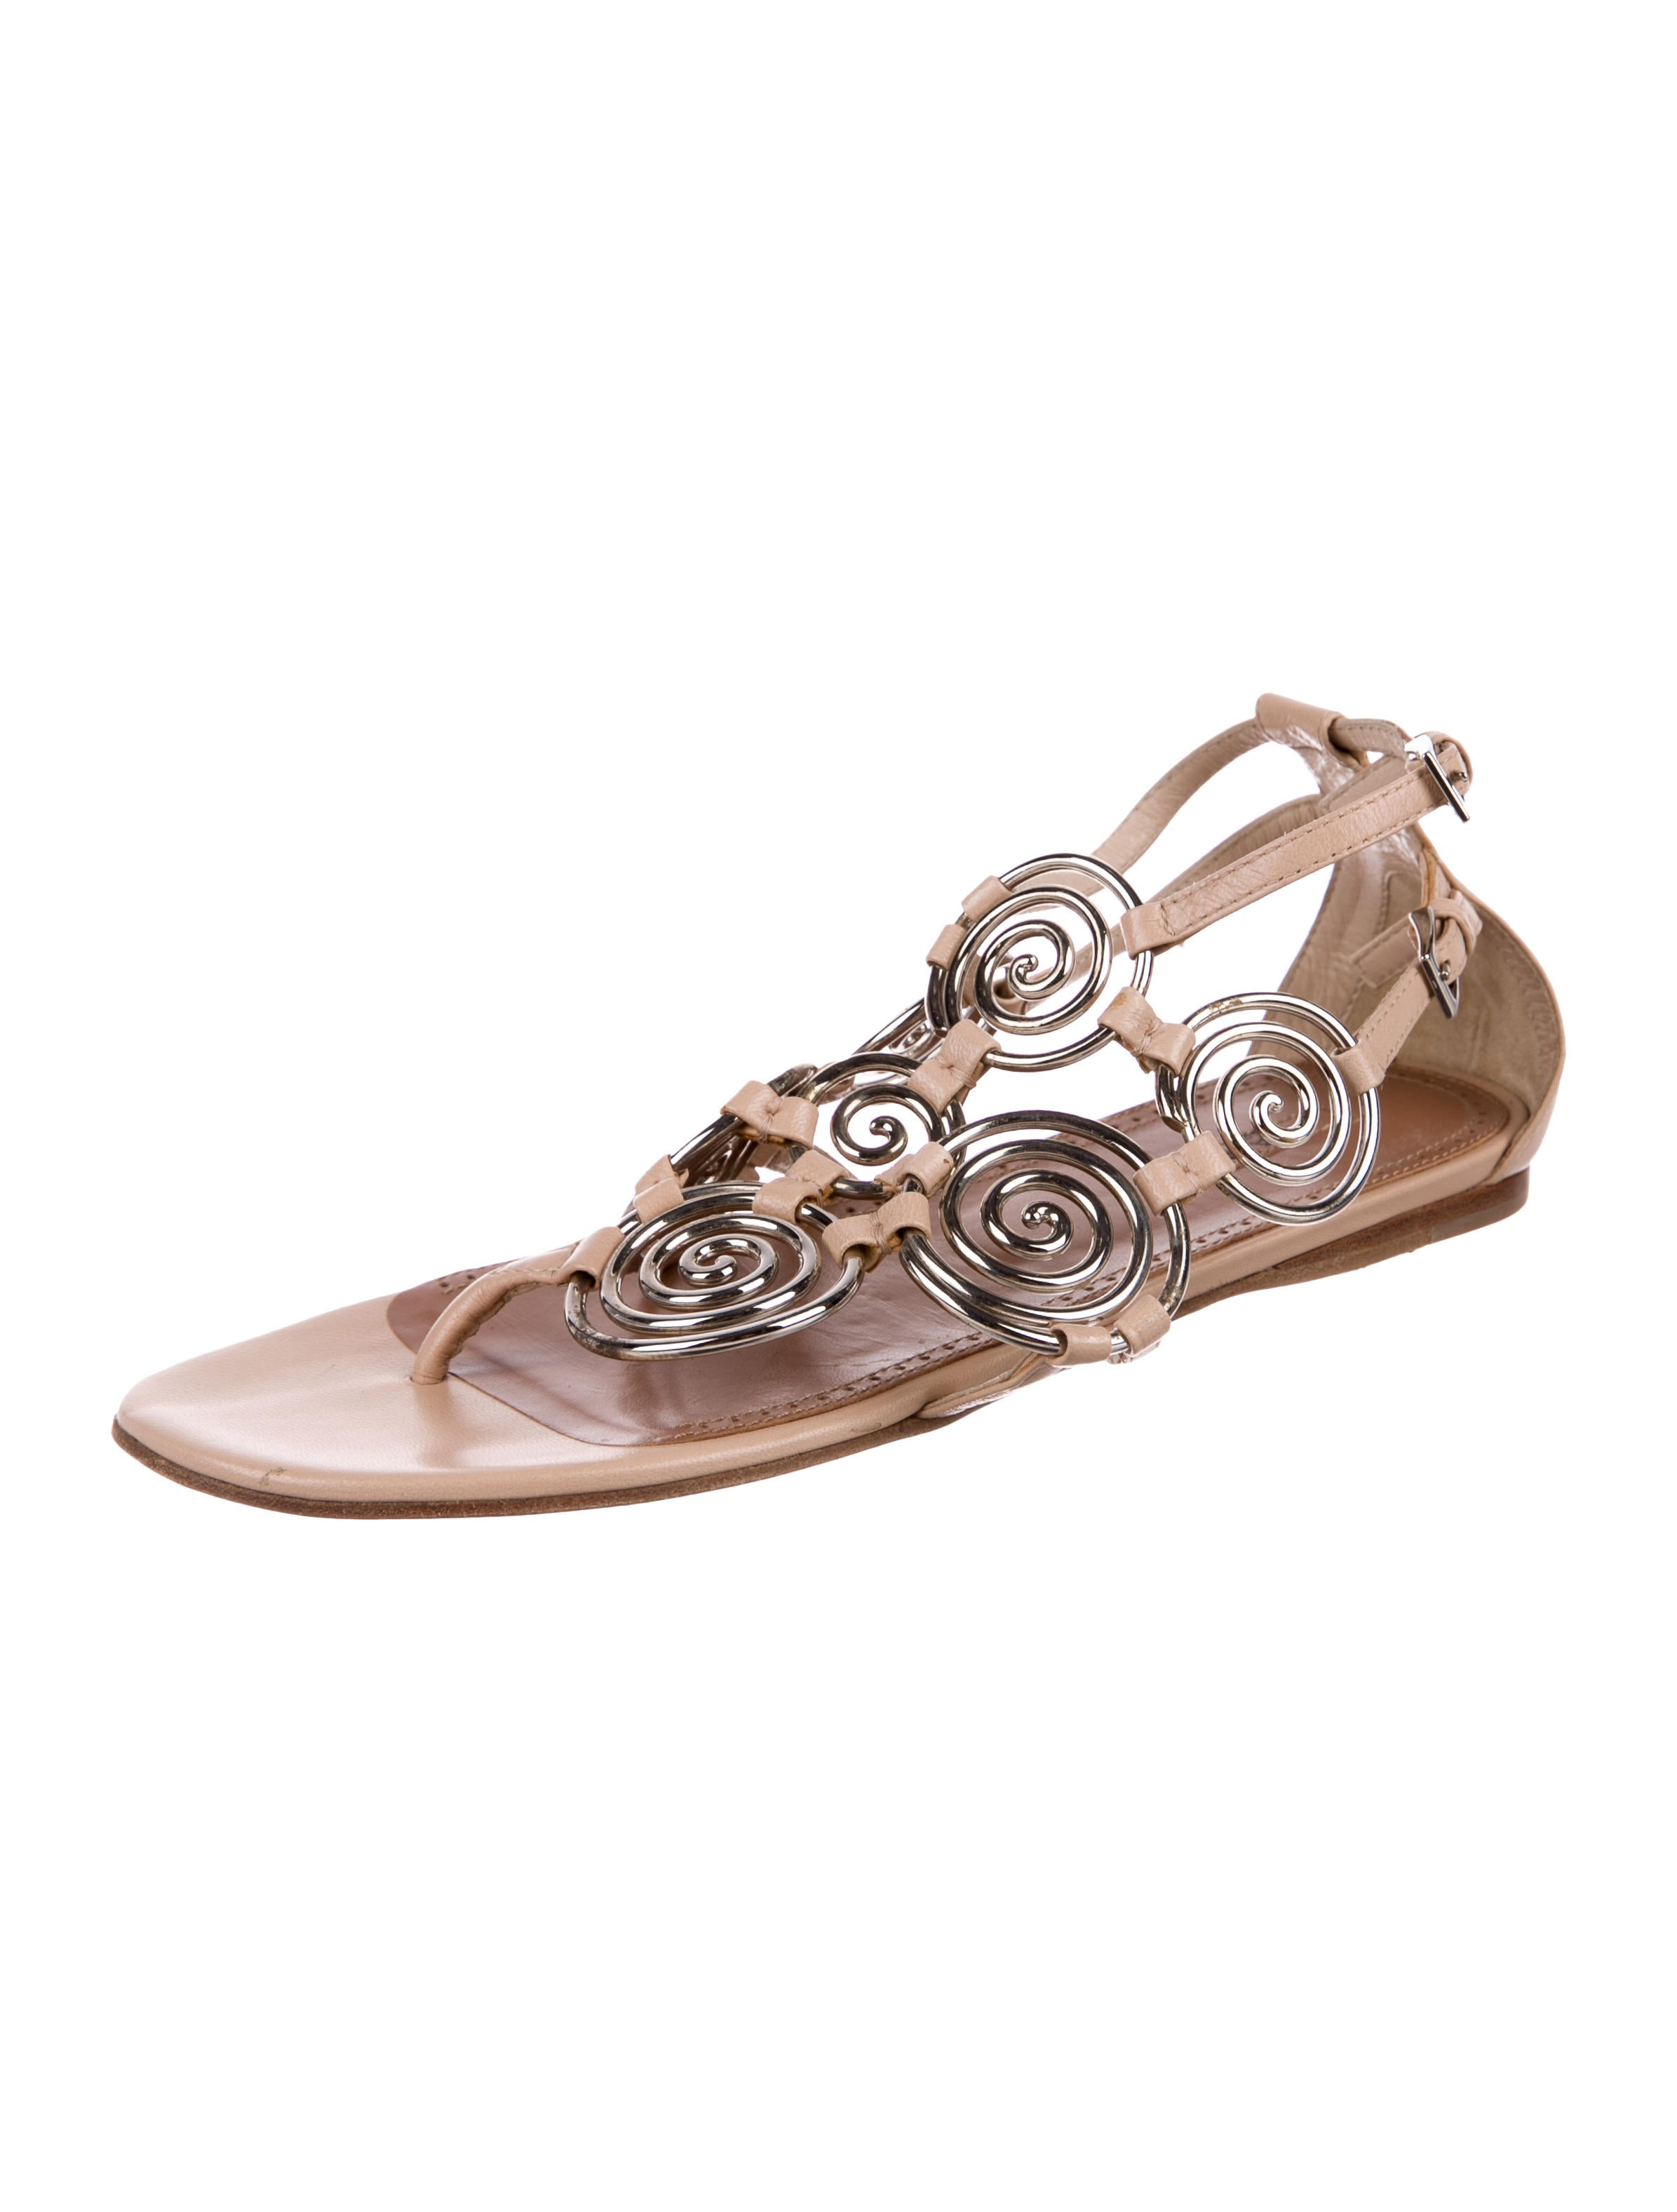 Alaïa Spiral Link Sandals with paypal for sale buy online outlet fashionable cheap online buy cheap low shipping fee h6gGLuHi0